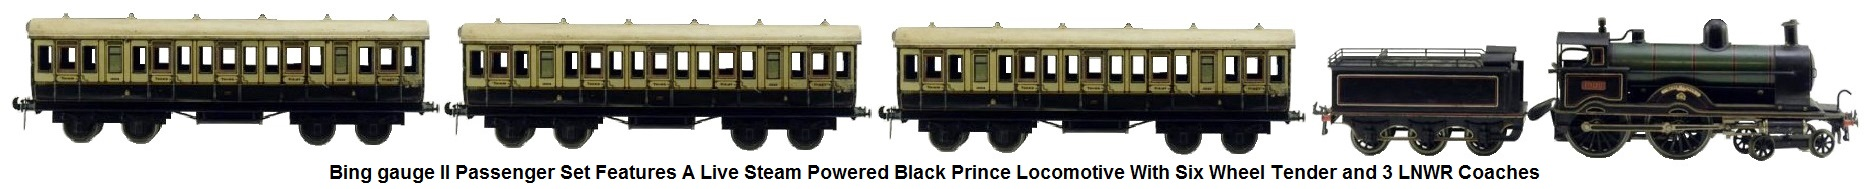 Bing gauge II set features a steam powered loco Black Prince with six wheel tender and 3 LNWR passenger coaches